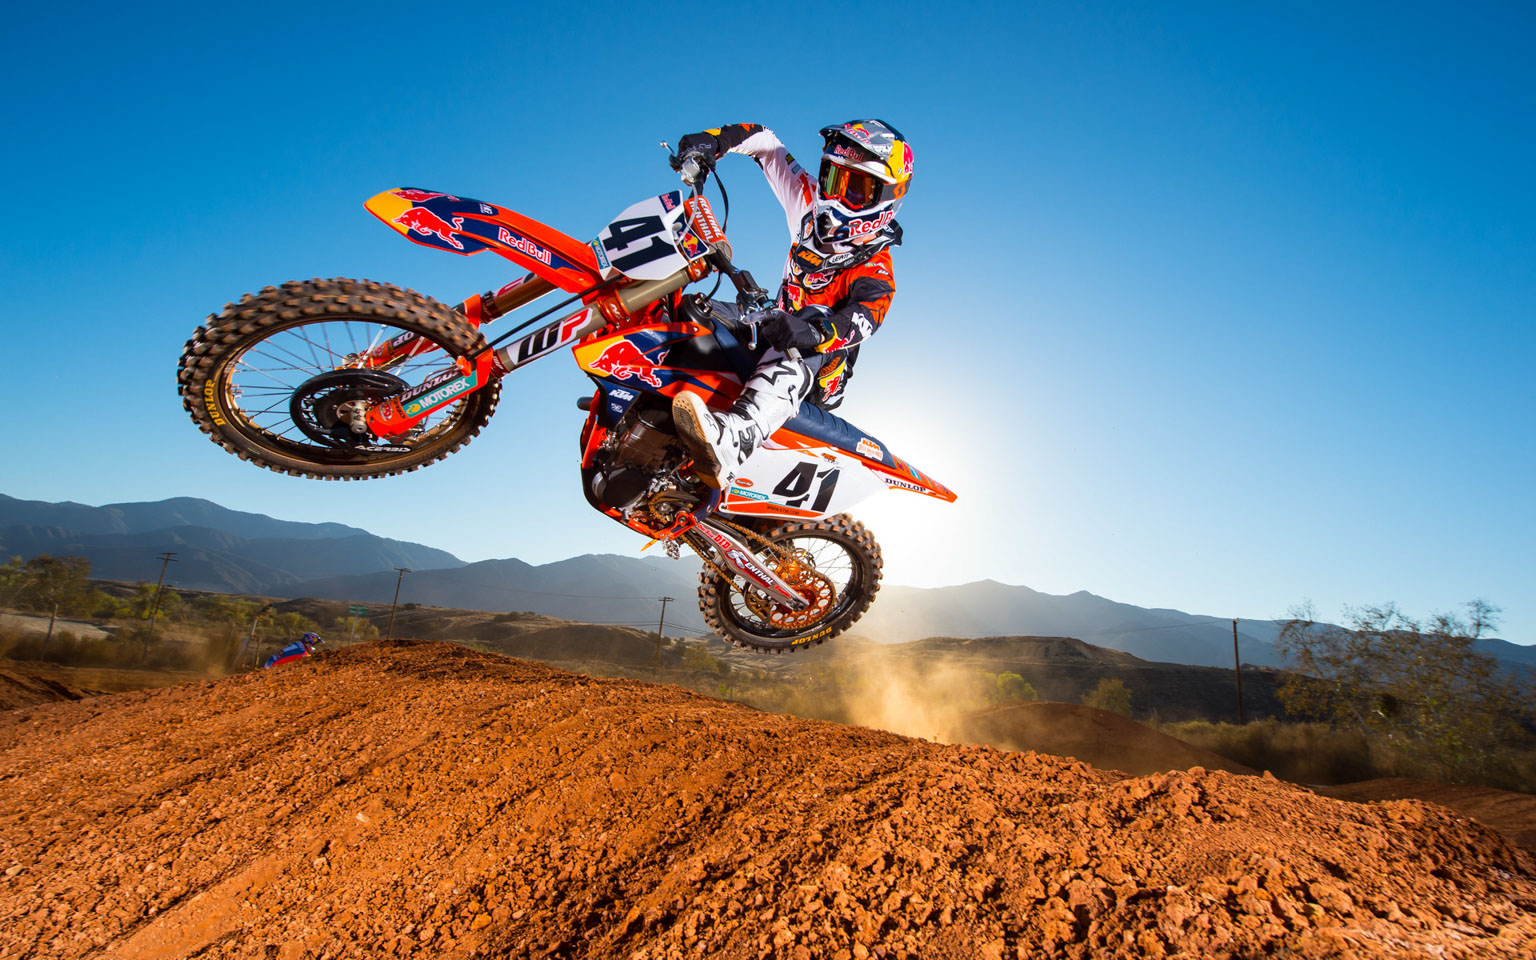 Trey Canard is the team newbie after years on Honda